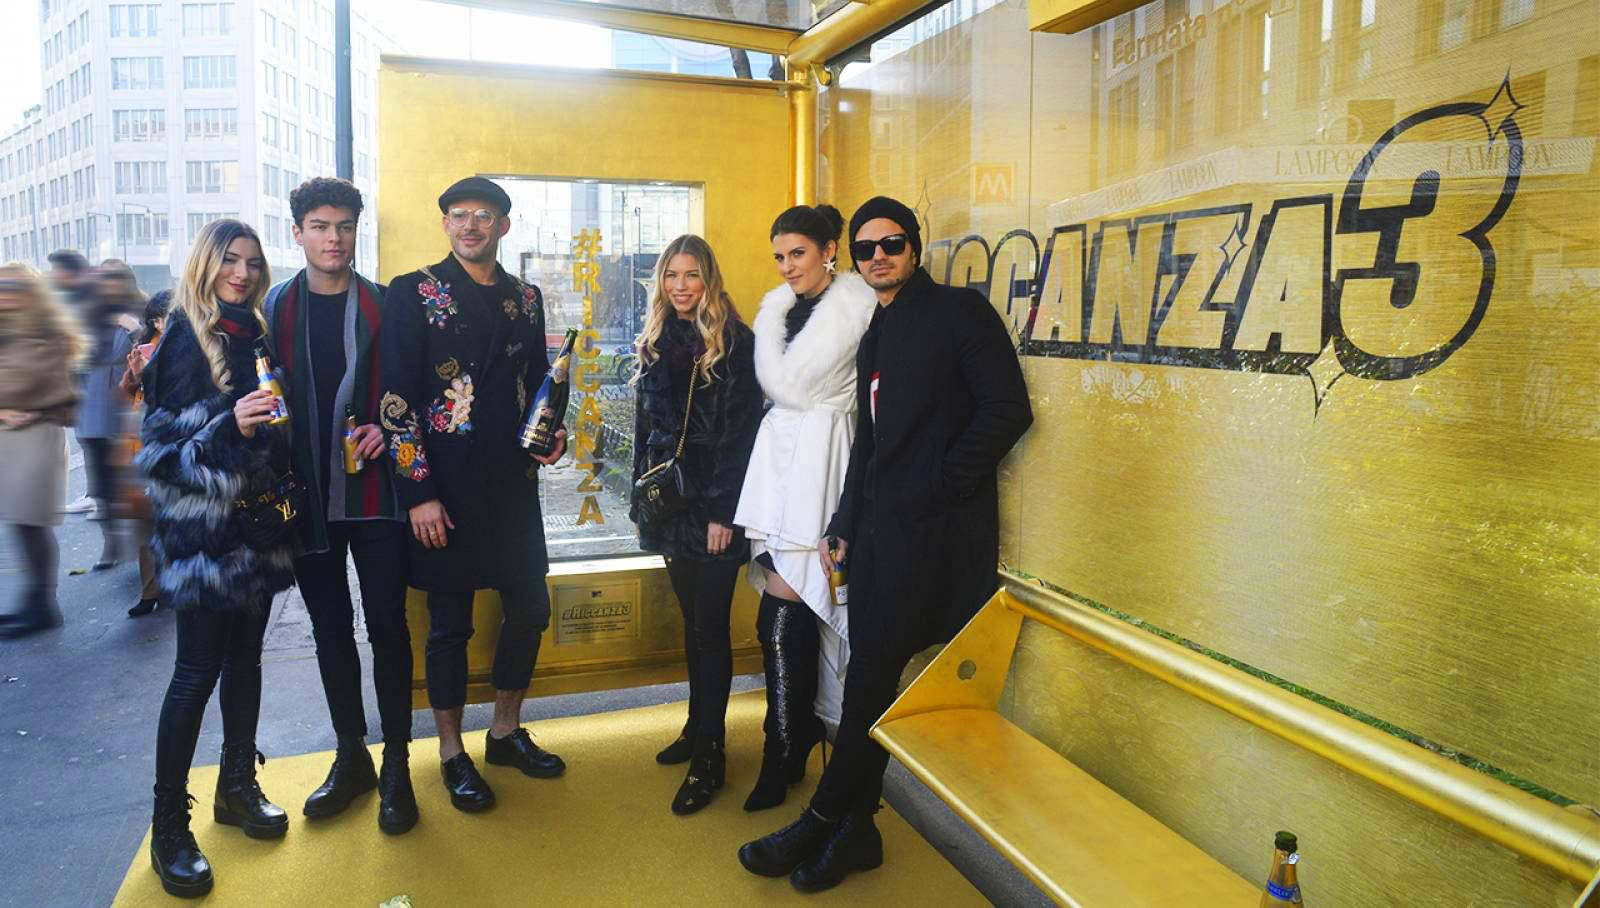 OOH IGPDecaux Milano brand shelter for Riccanza MTV